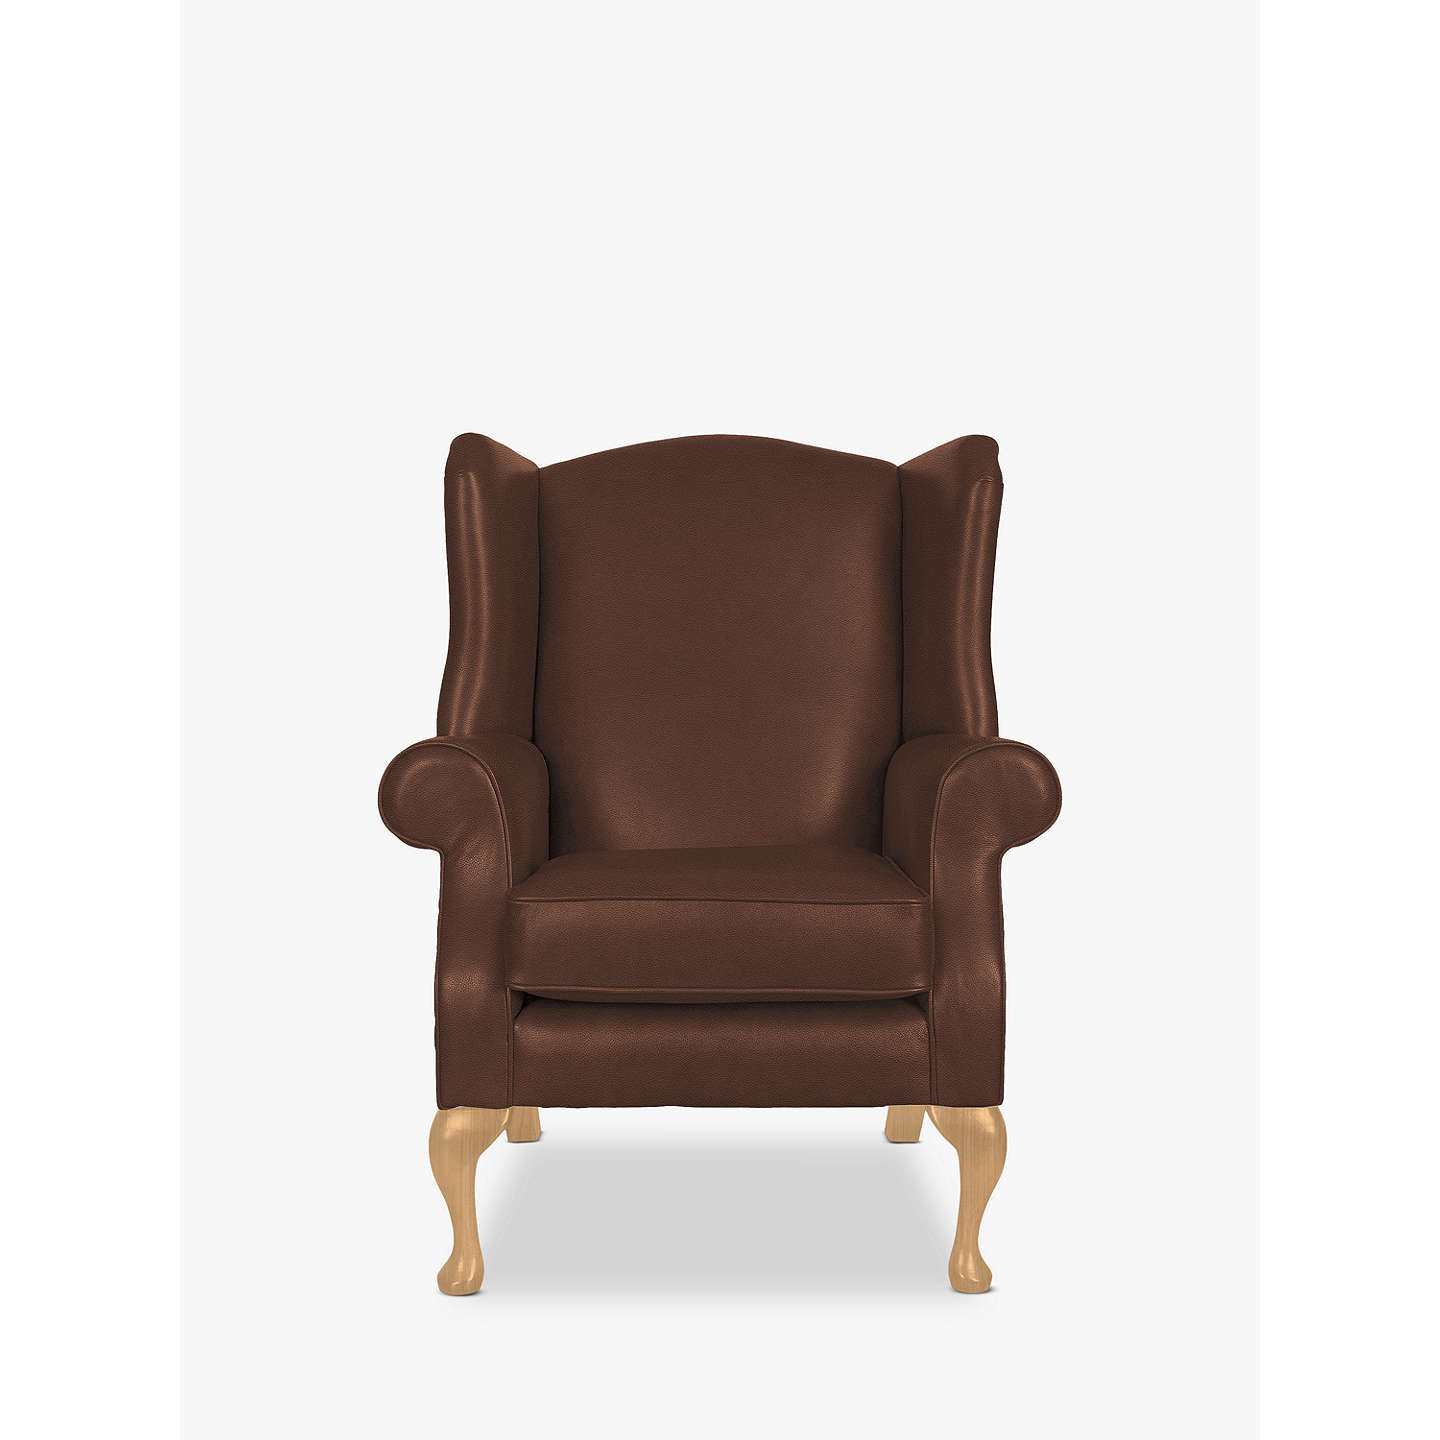 Parker Knoll Oberon Leather Armchair at John Lewis